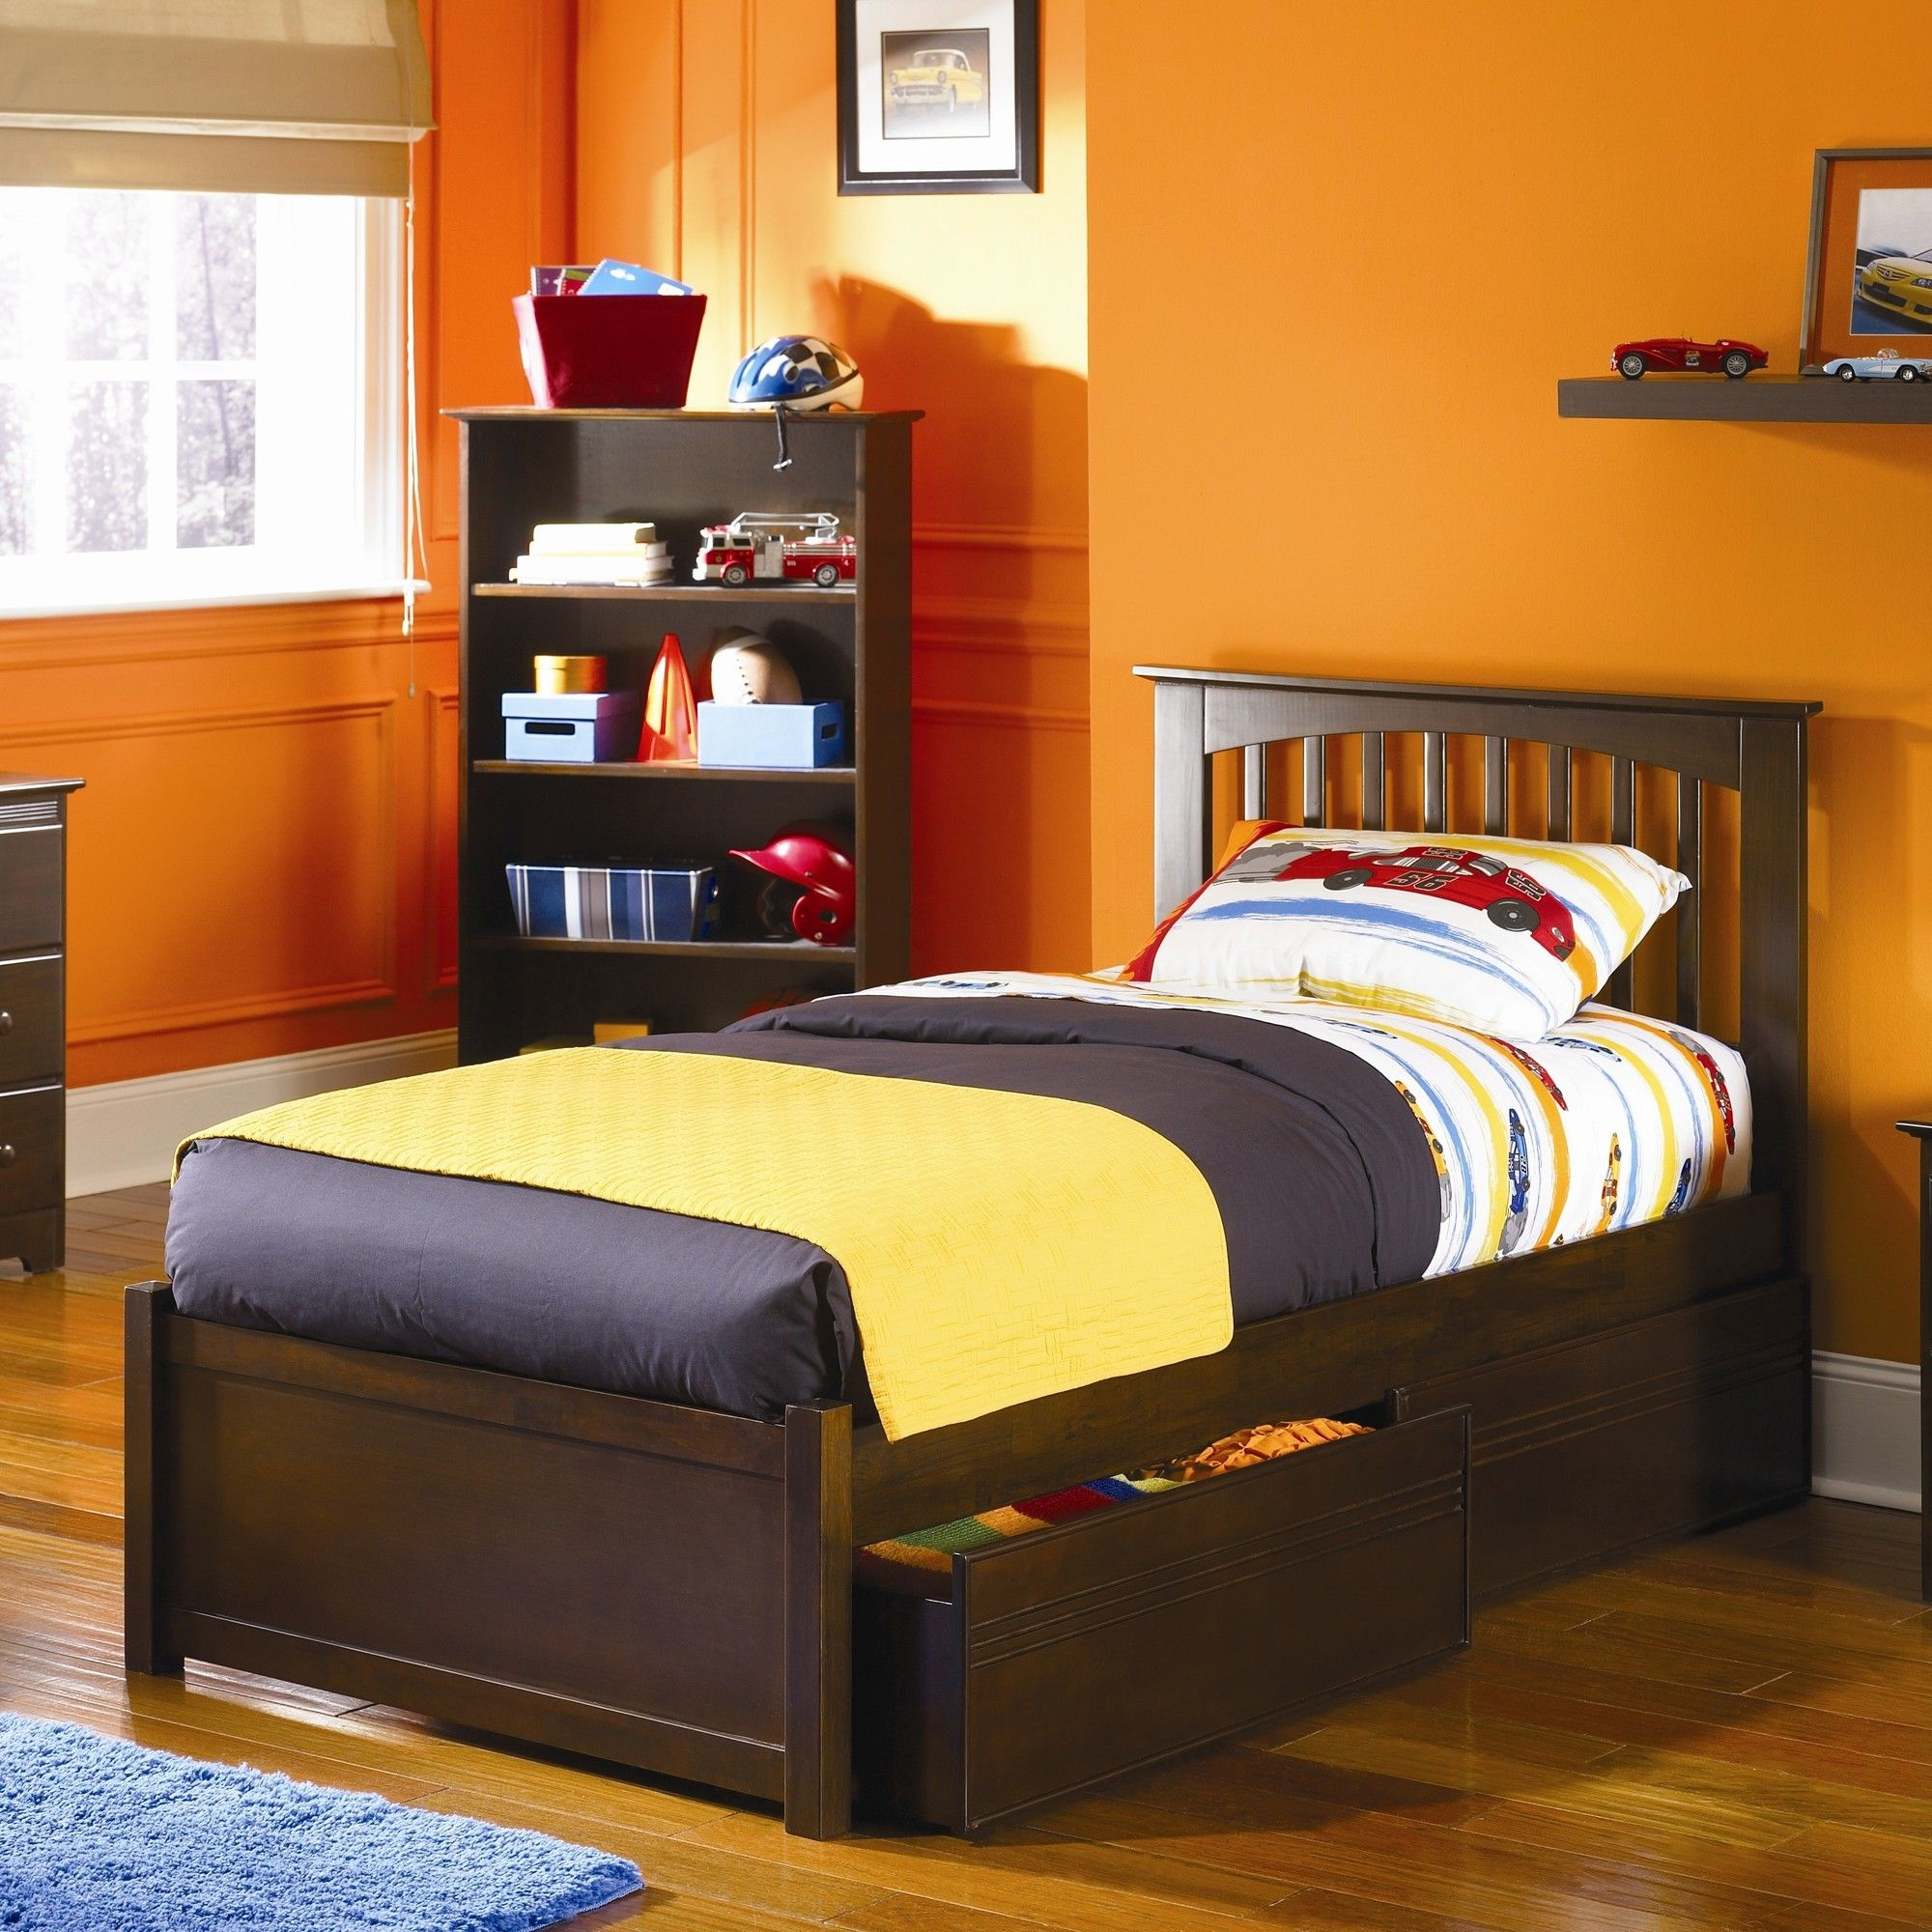 Charlotte Arched Panel Bed | Chatas, Antigüedades y Muebles